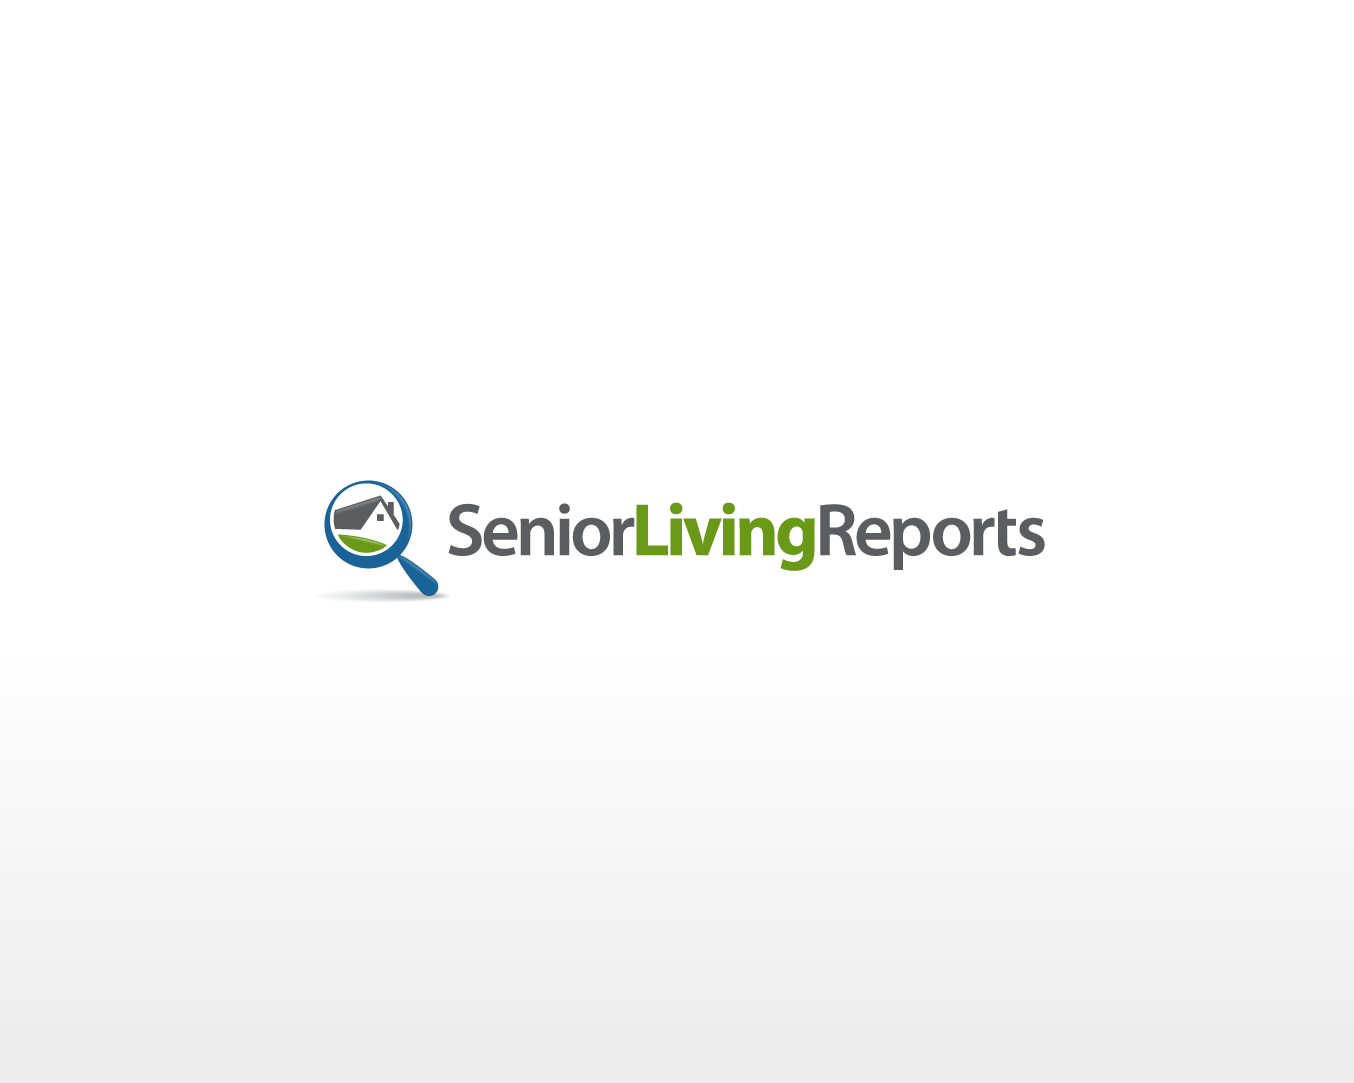 logo for SeniorLivingReports